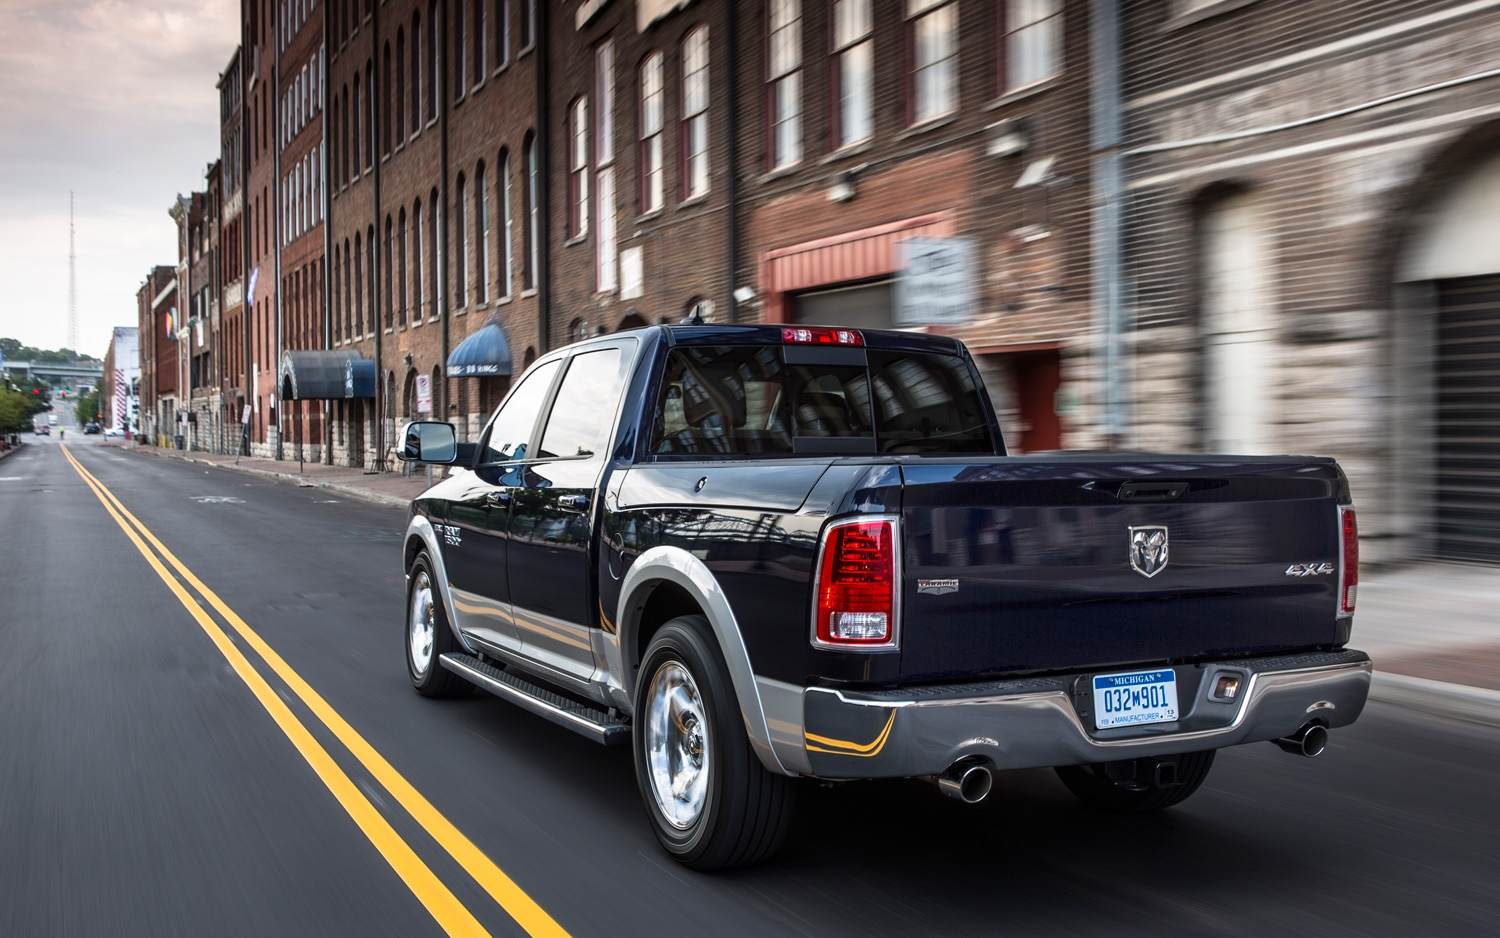 2013 Ram 1500 Rear View In Motion